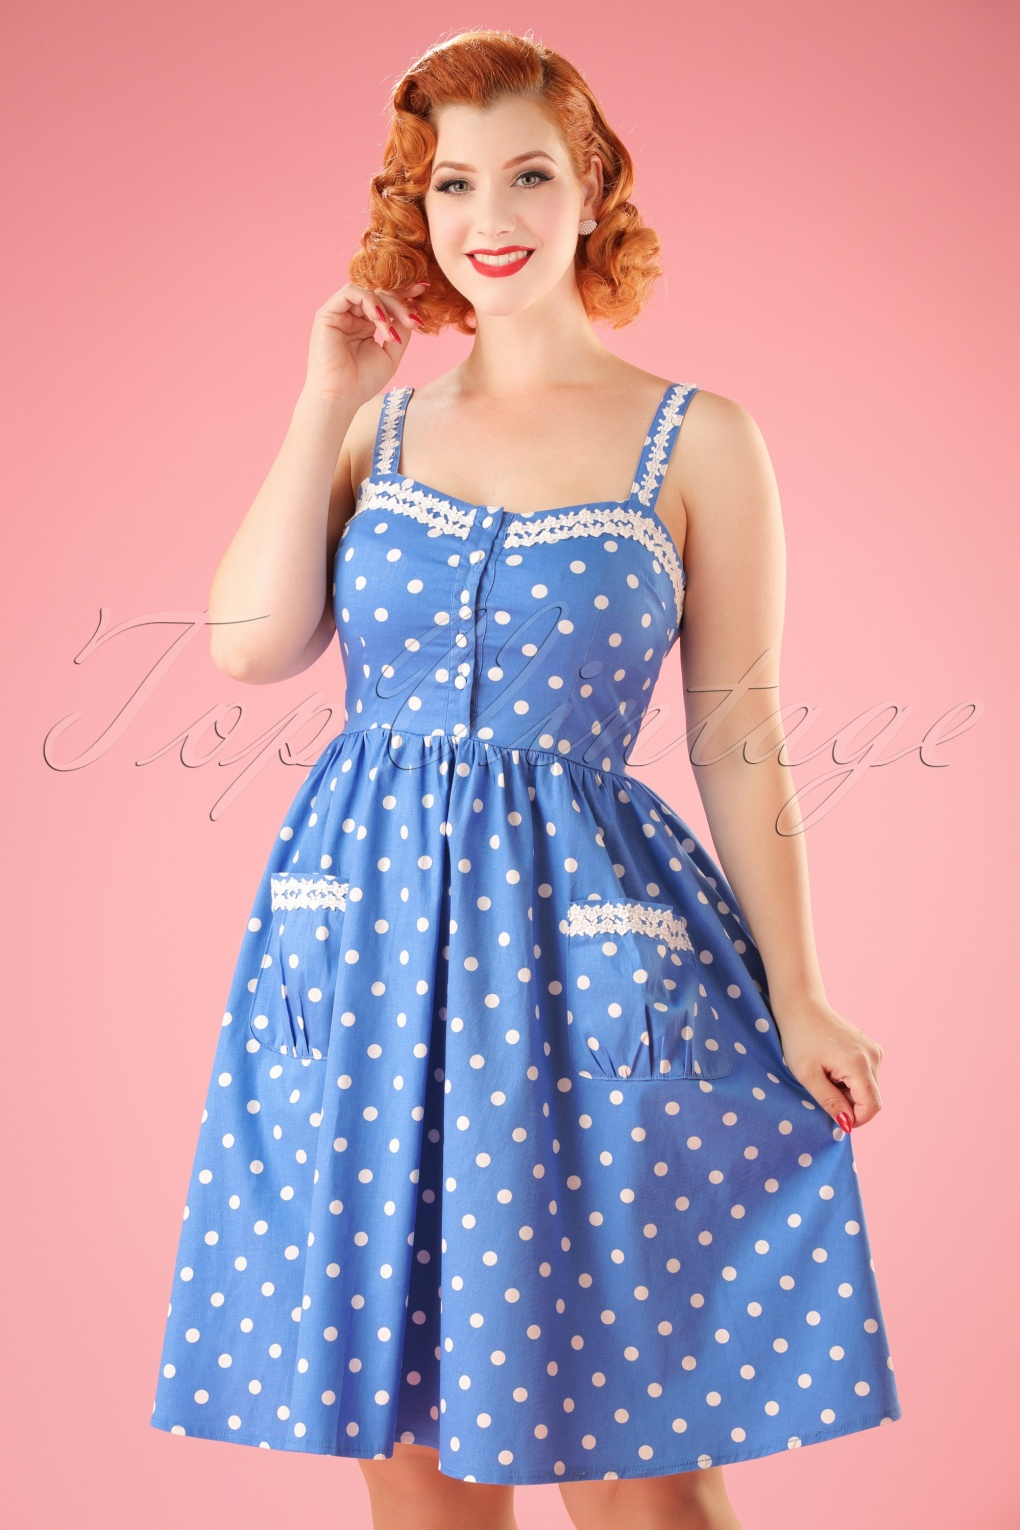 1940s Pinup Dresses for Sale Corinna Polkadot Swing Dress in Sky Blue £31.82 AT vintagedancer.com